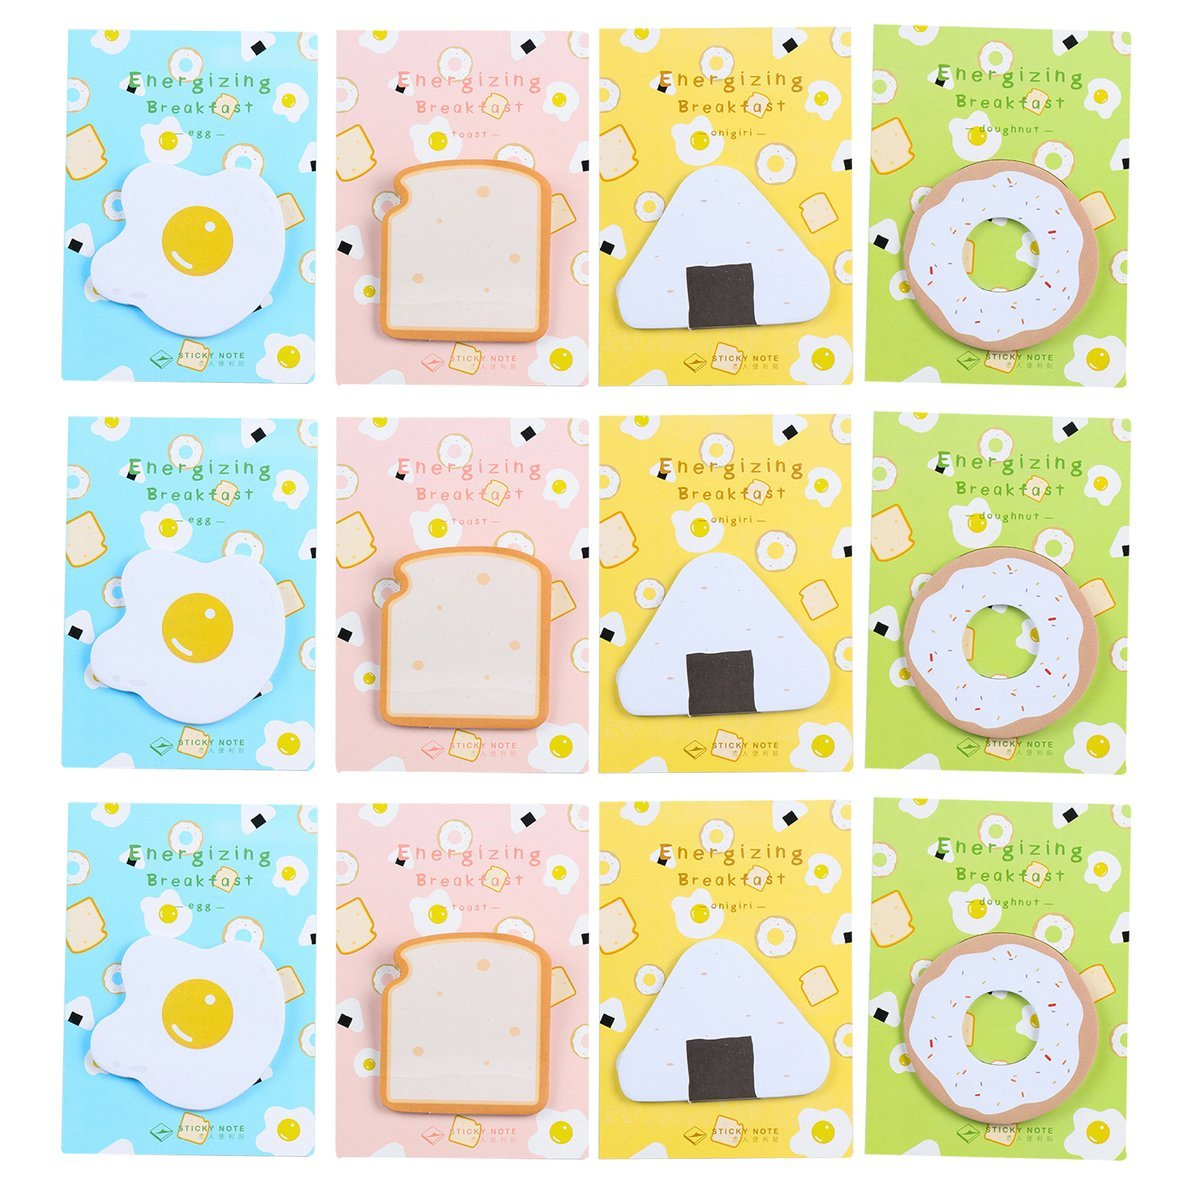 Mily Cute Breakfast Food Shape Sticky Notes Doughnut, Onigiri, Egg, Toast Shape Memo Pad Paper Office Self-Stick Notes, 30 Sheets/Pad, 12 Pack